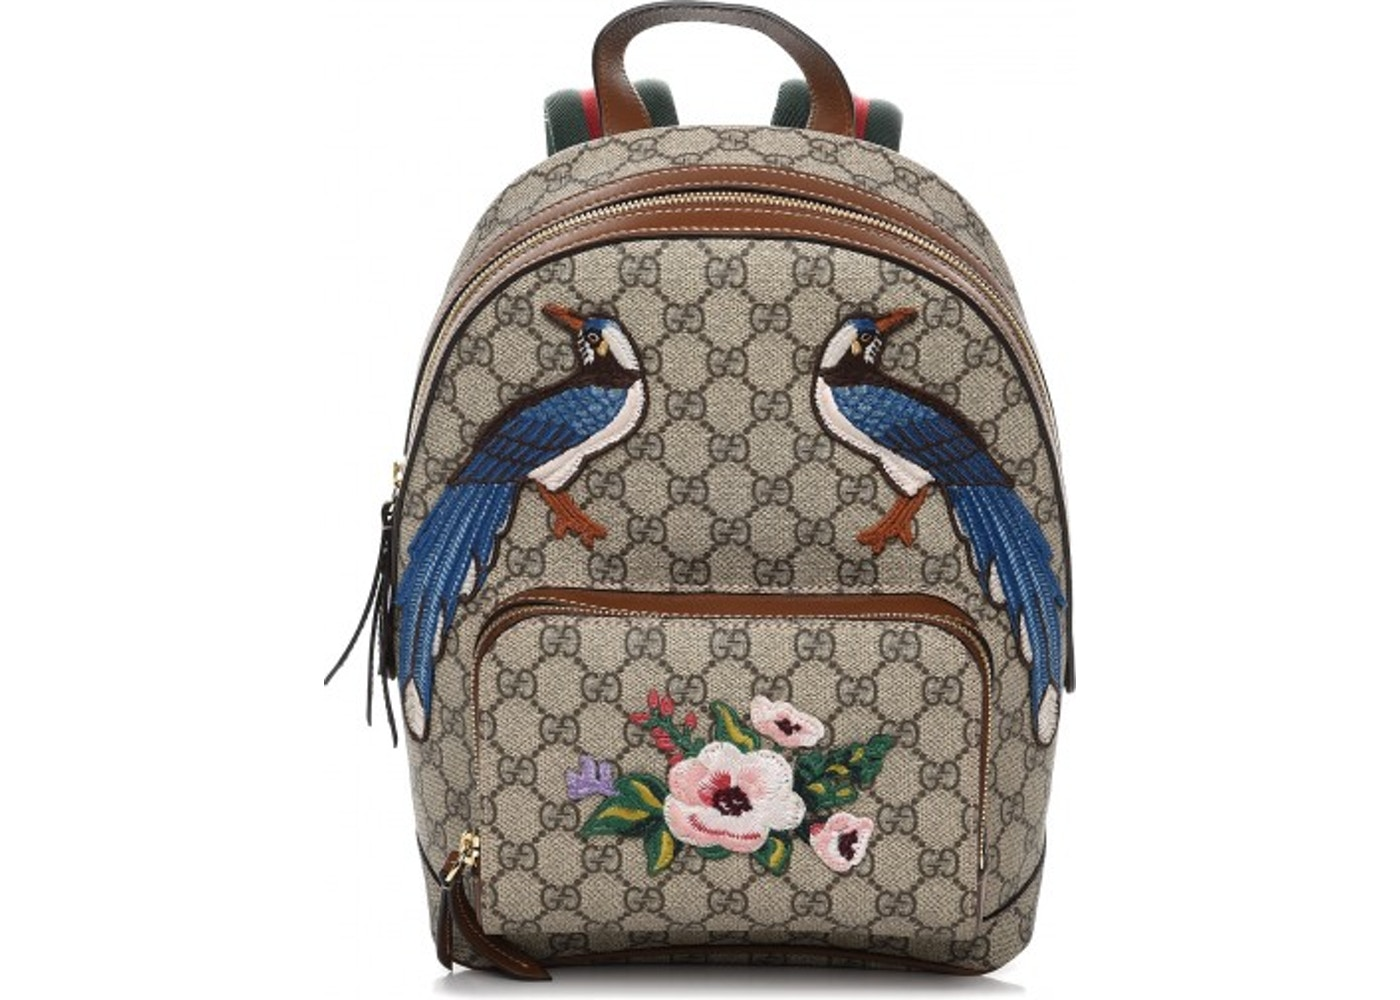 263b300ac Gucci Garden Collection Backpack Monogram GG Embroidered Small ...